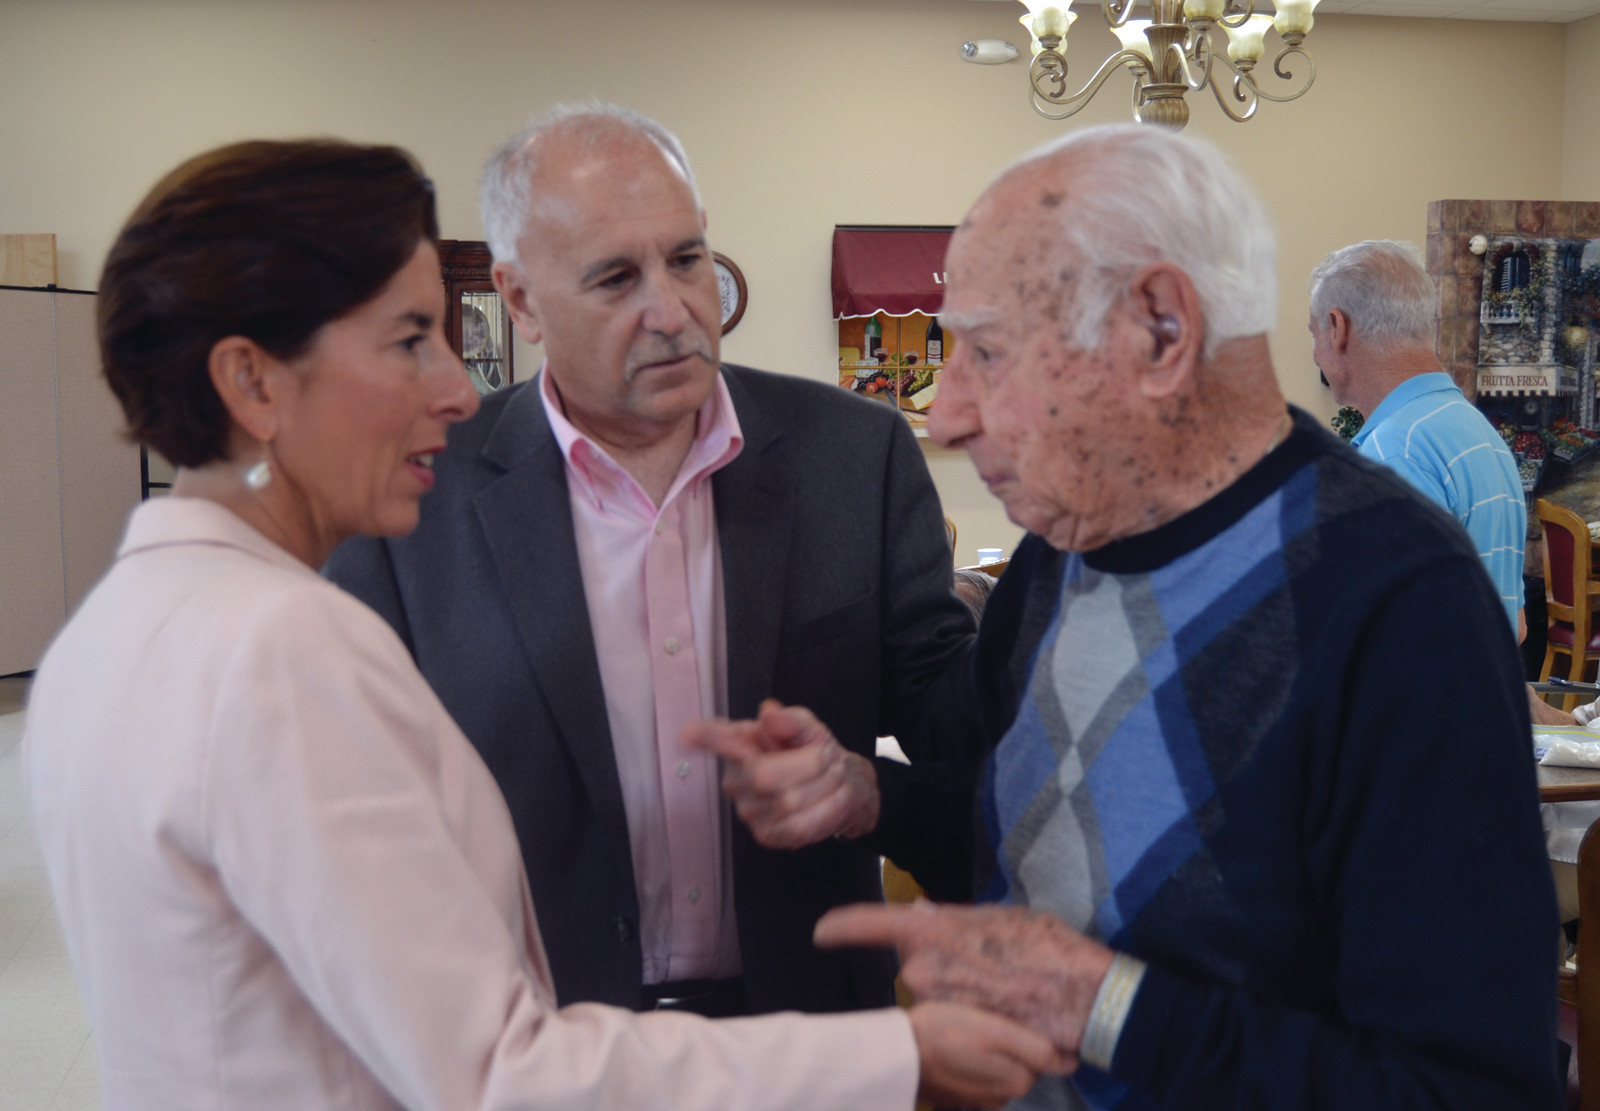 CENTENARIAN SURPRISE: 102-year-old Johnstonian Orlando Ricci took a moment to greet the Governor during her visit to the senior center.